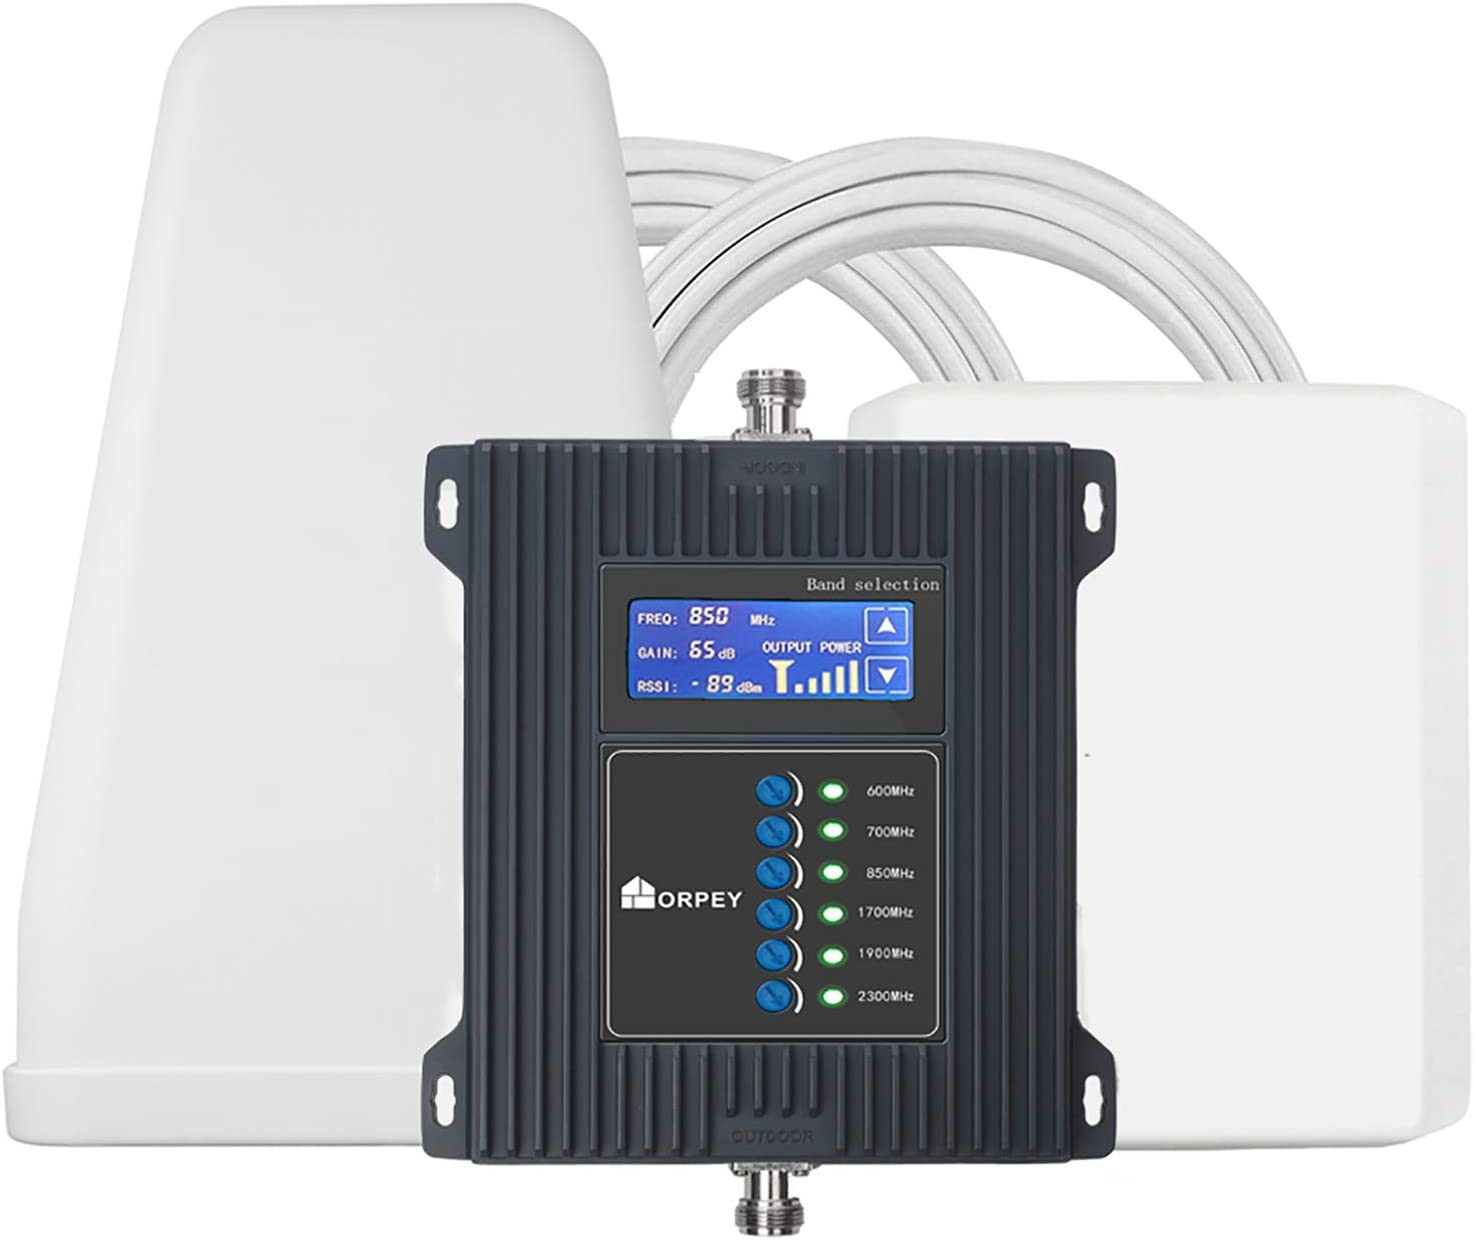 5G Cell Phone Signal Booster Repeater for Home and Office - Improves 5G and 4G LTE Signal for Verizon, AT&T, T-Mobile, Sprint - Multiple Band 2/4/5/12/13/17 for 5G